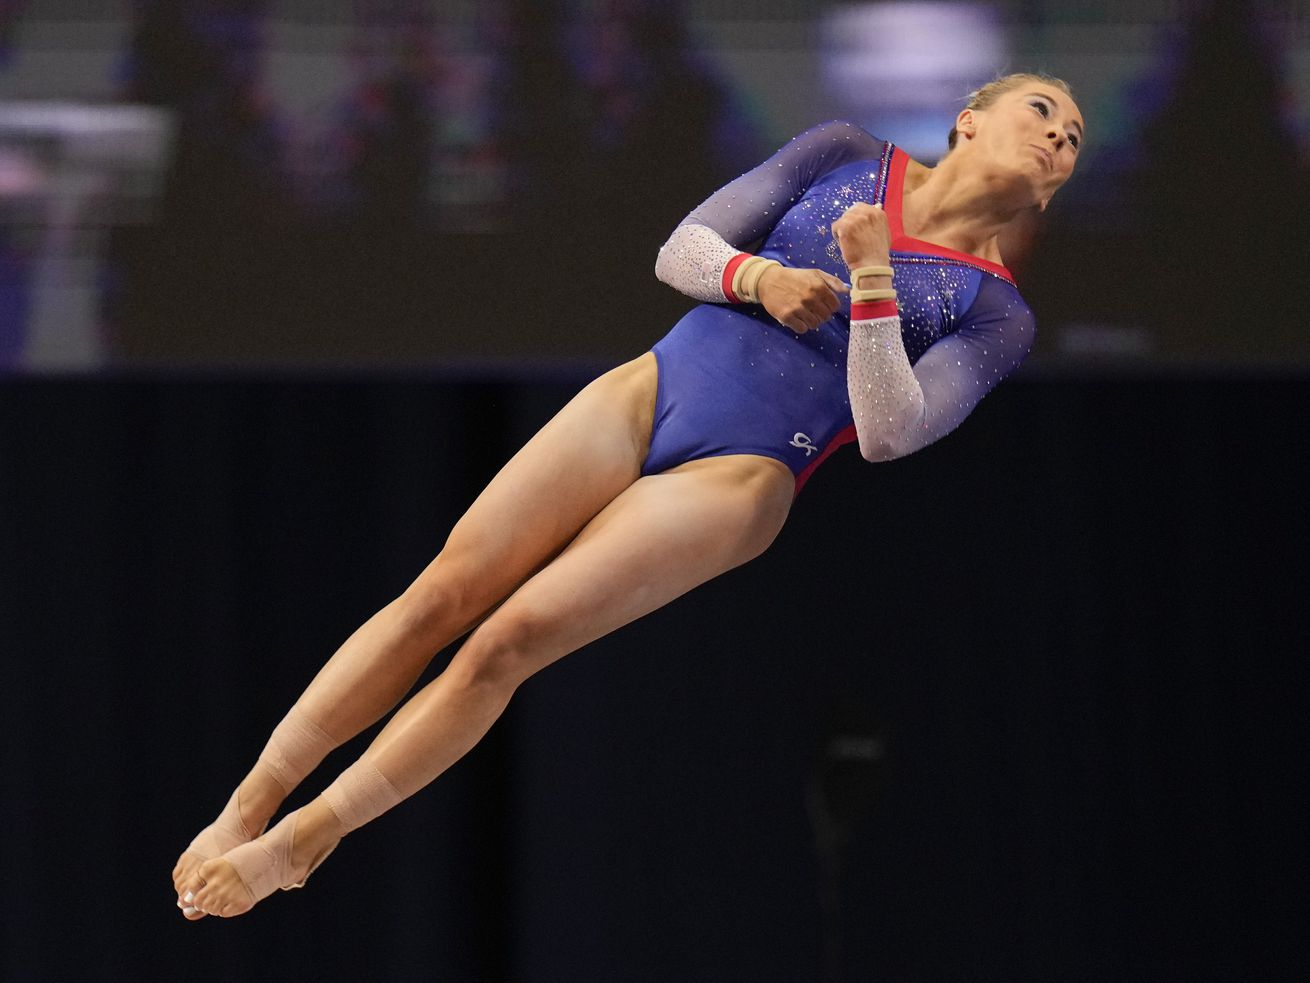 MyKayla Skinner, a former University of Utah gymnast, competes on the vault during the U.S. Olympic Gymnastics Trials.